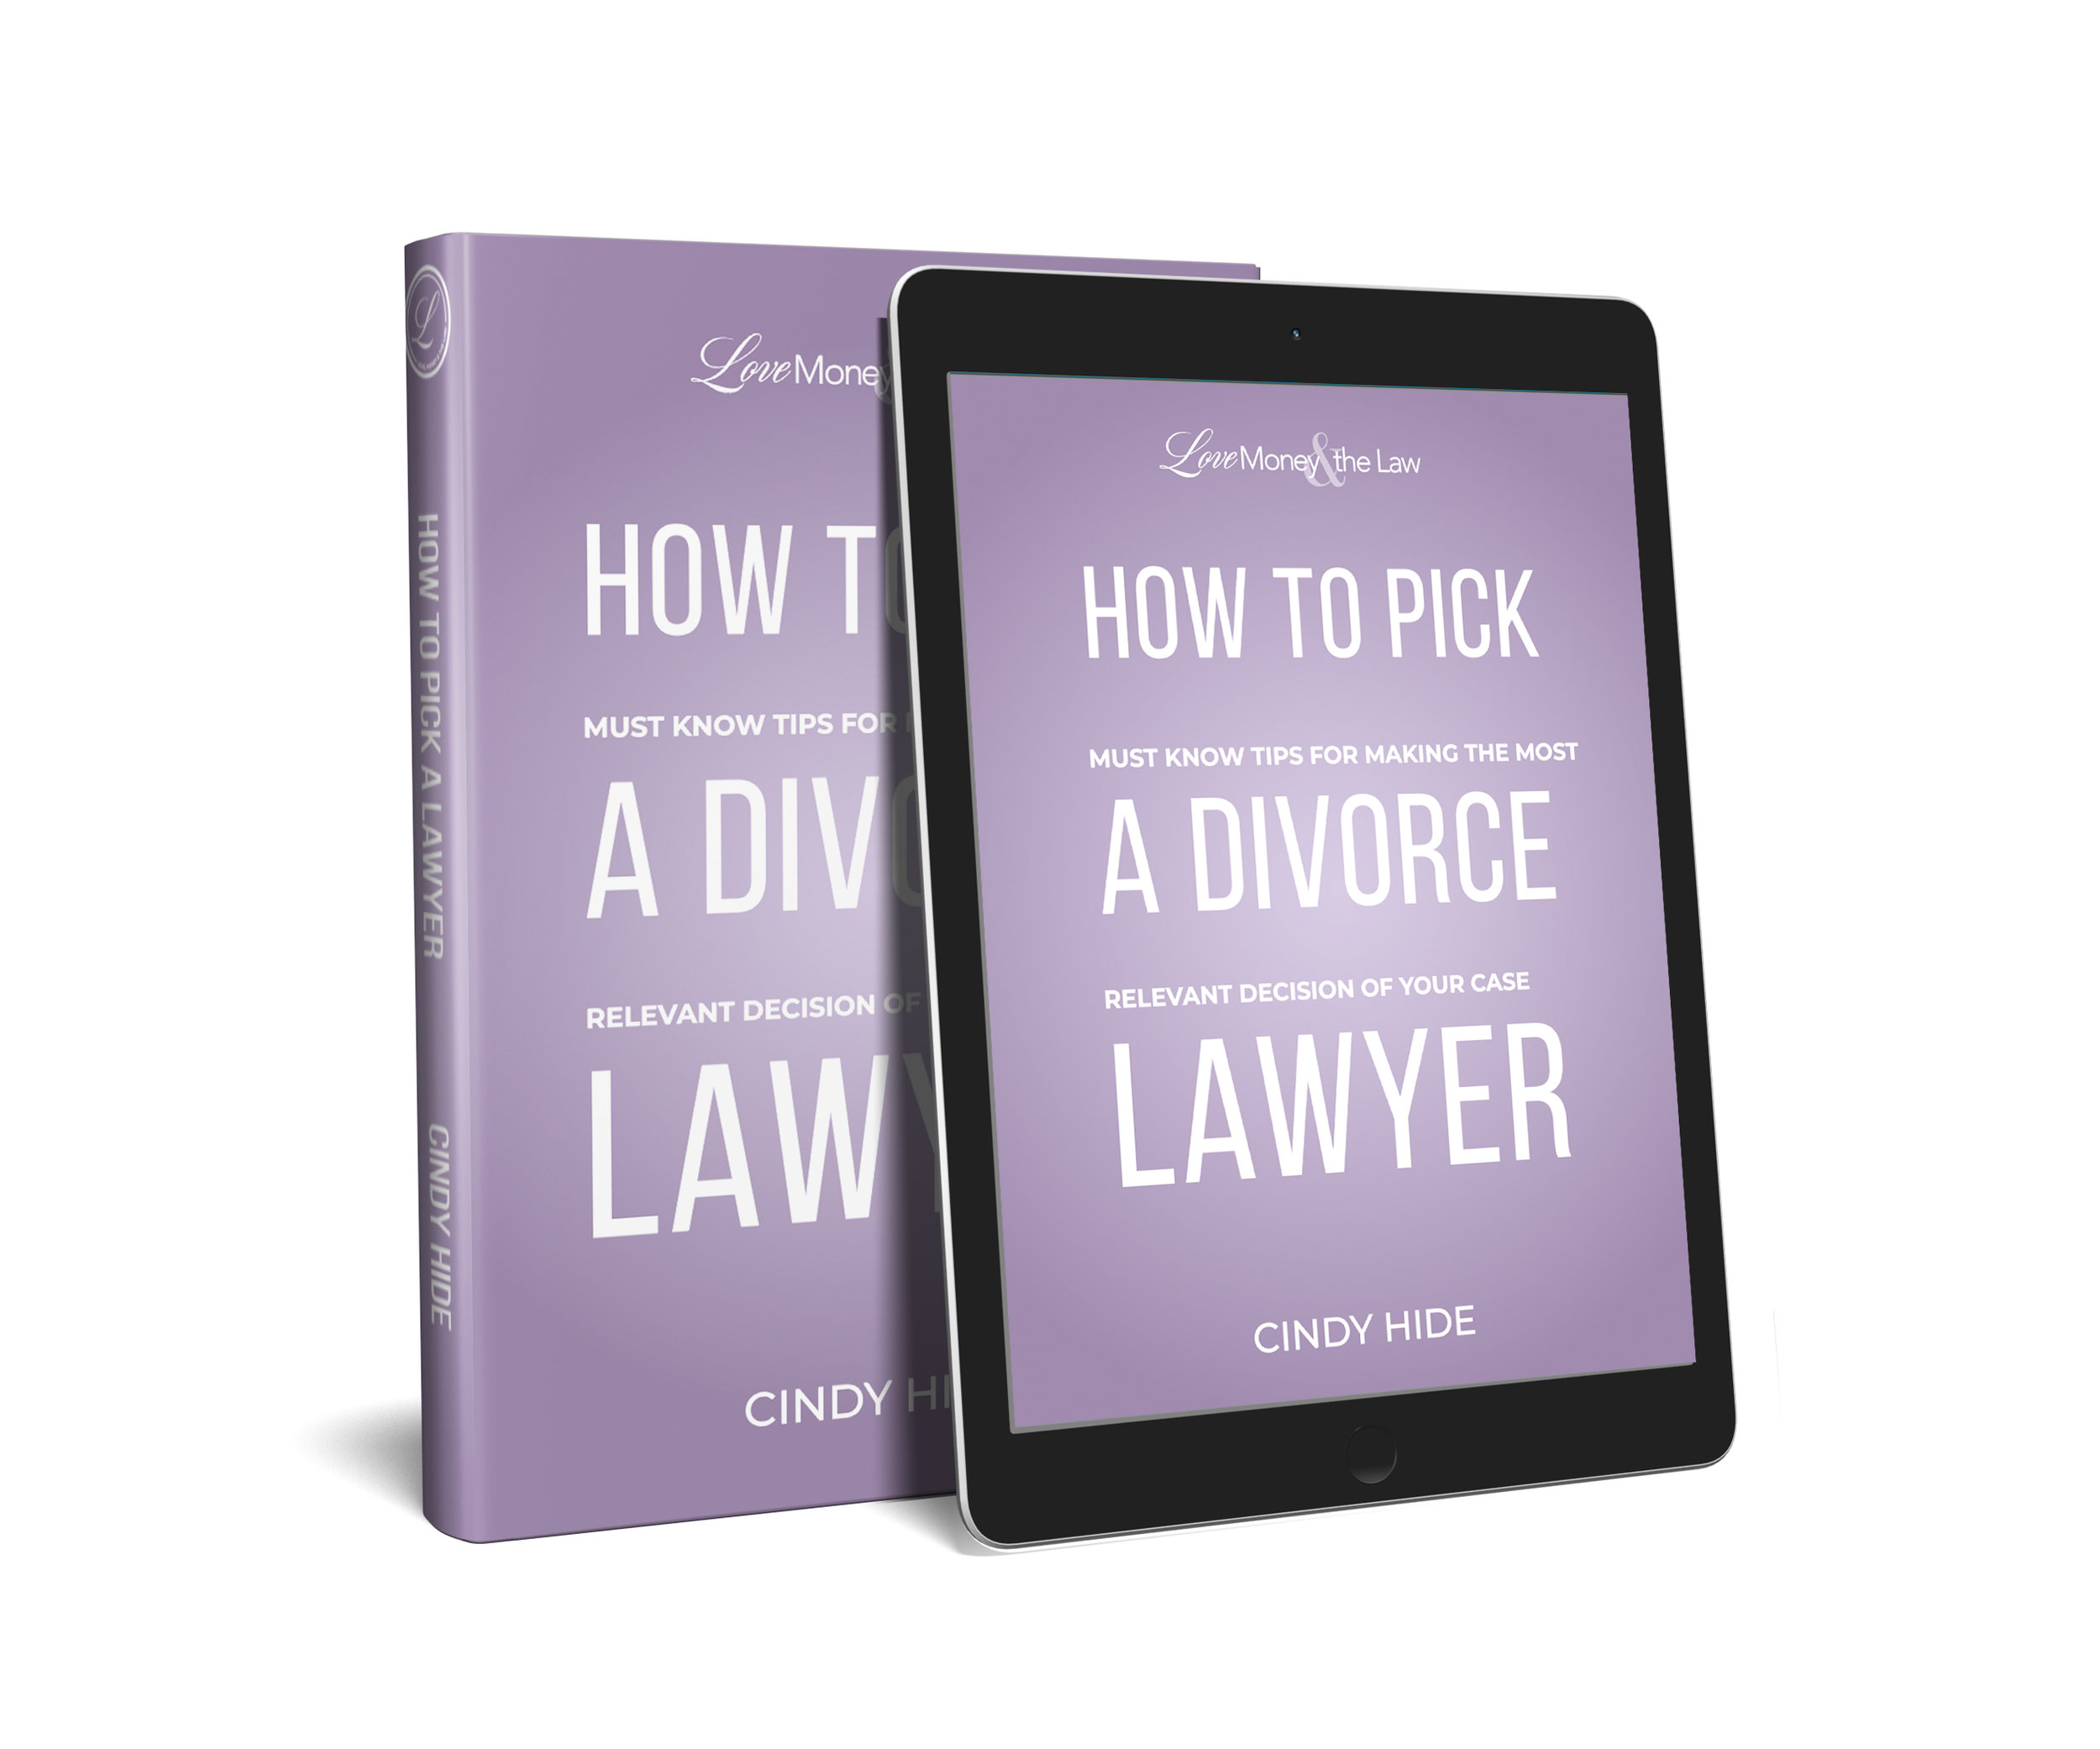 E-Book for How to Pick a Divorce Lawyer: Must Know Tips for Making the Most Relevant Decision of